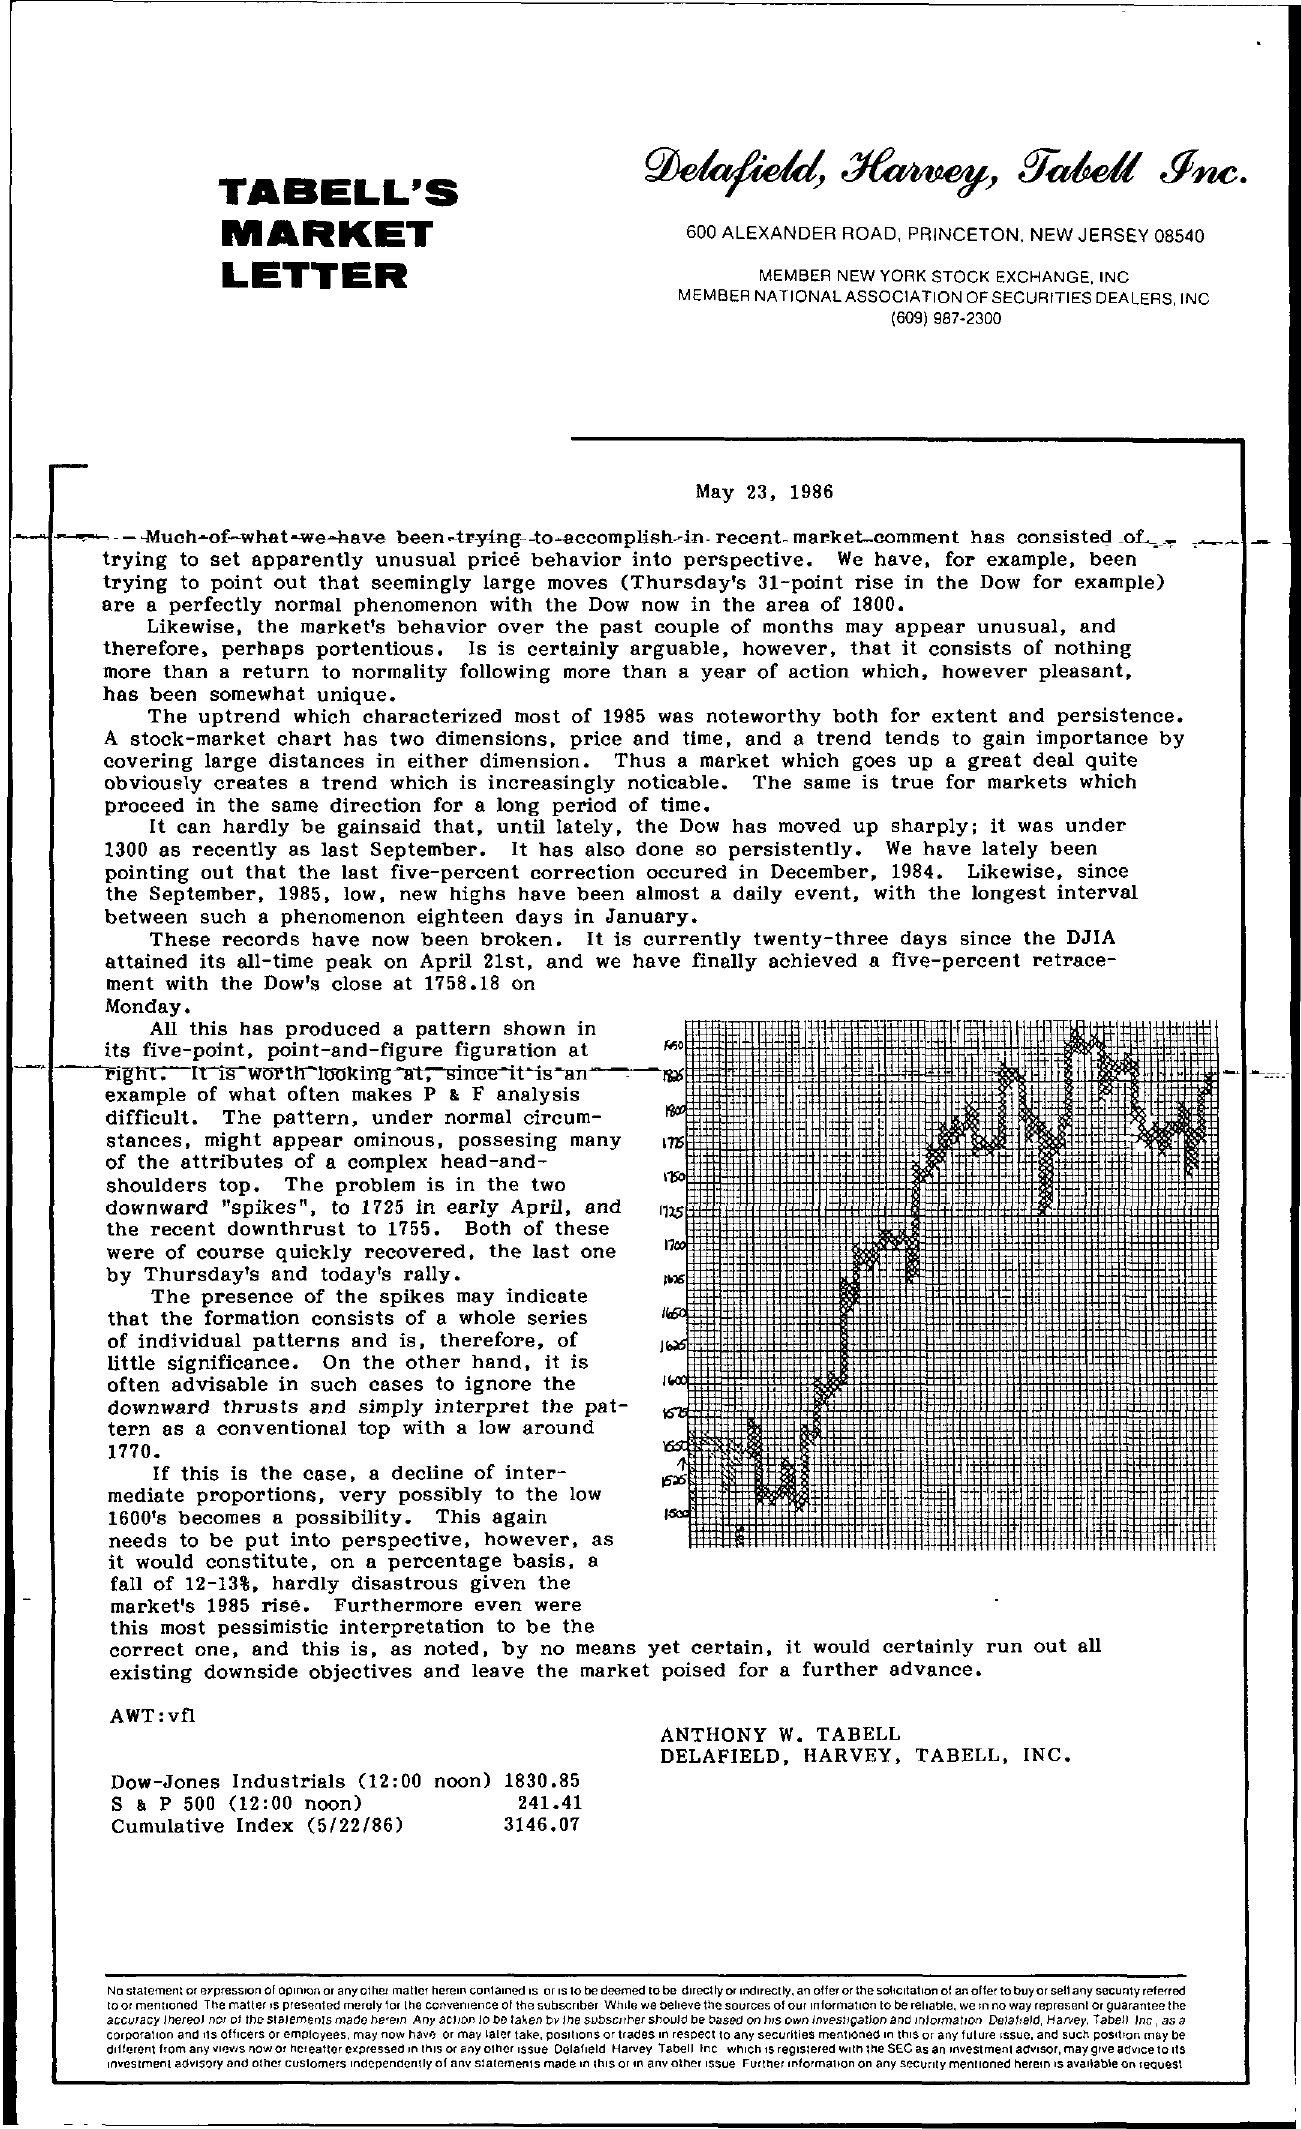 Tabell's Market Letter - May 23, 1986